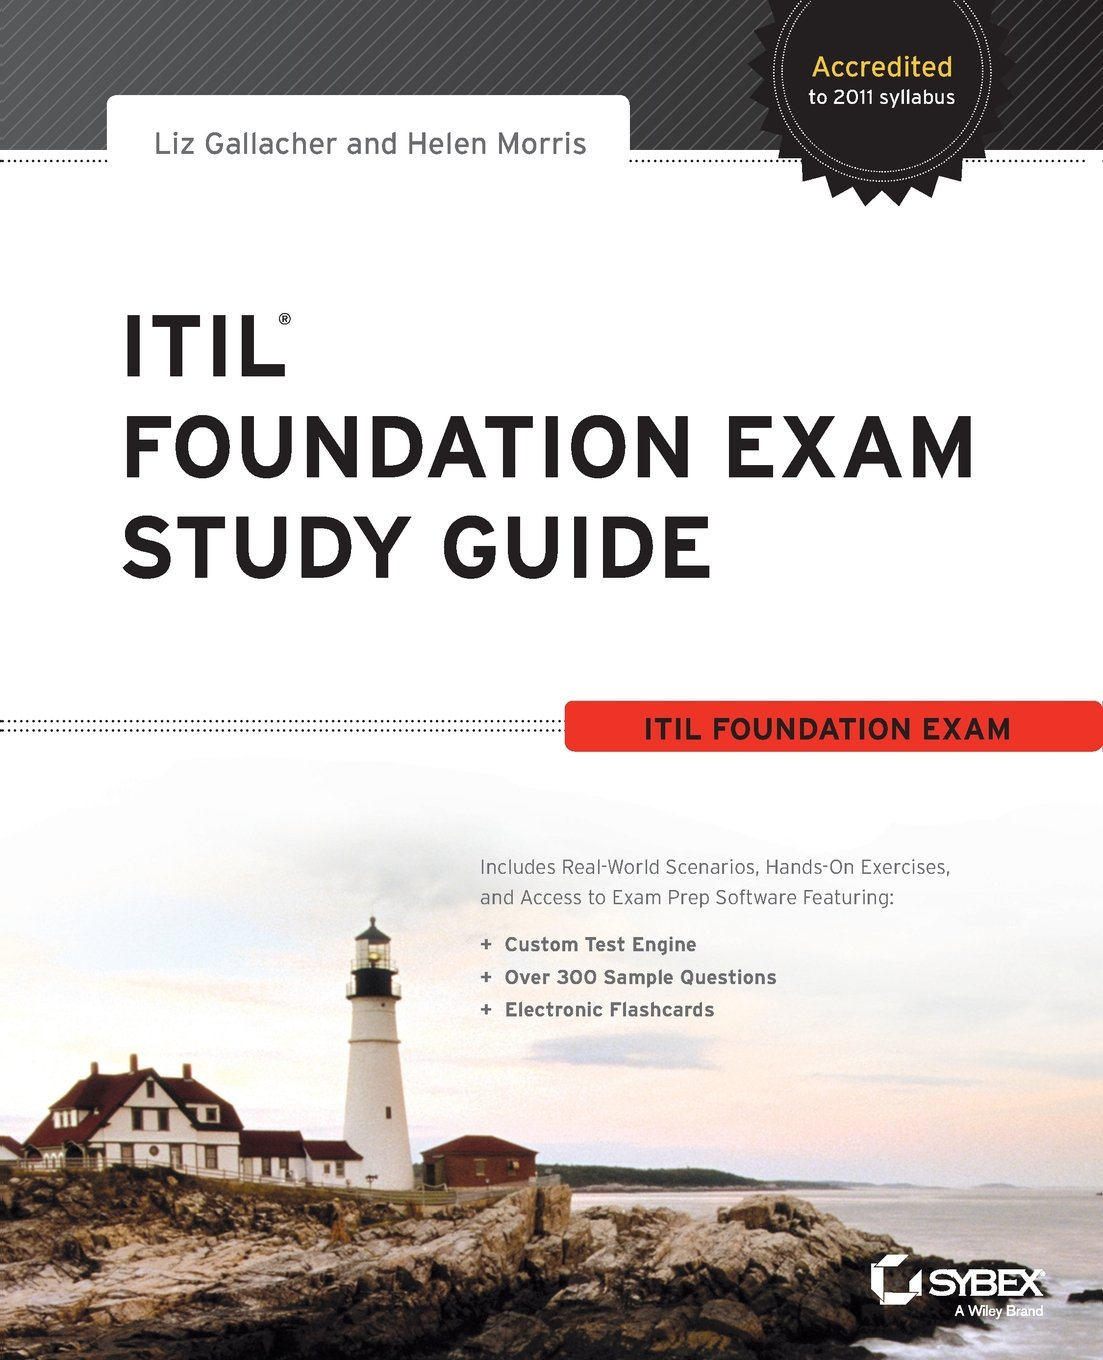 Itil foundation exam study guide liz gallacher helen morris itil foundation exam study guide liz gallacher helen morris 8601401097846 books amazon 1betcityfo Choice Image